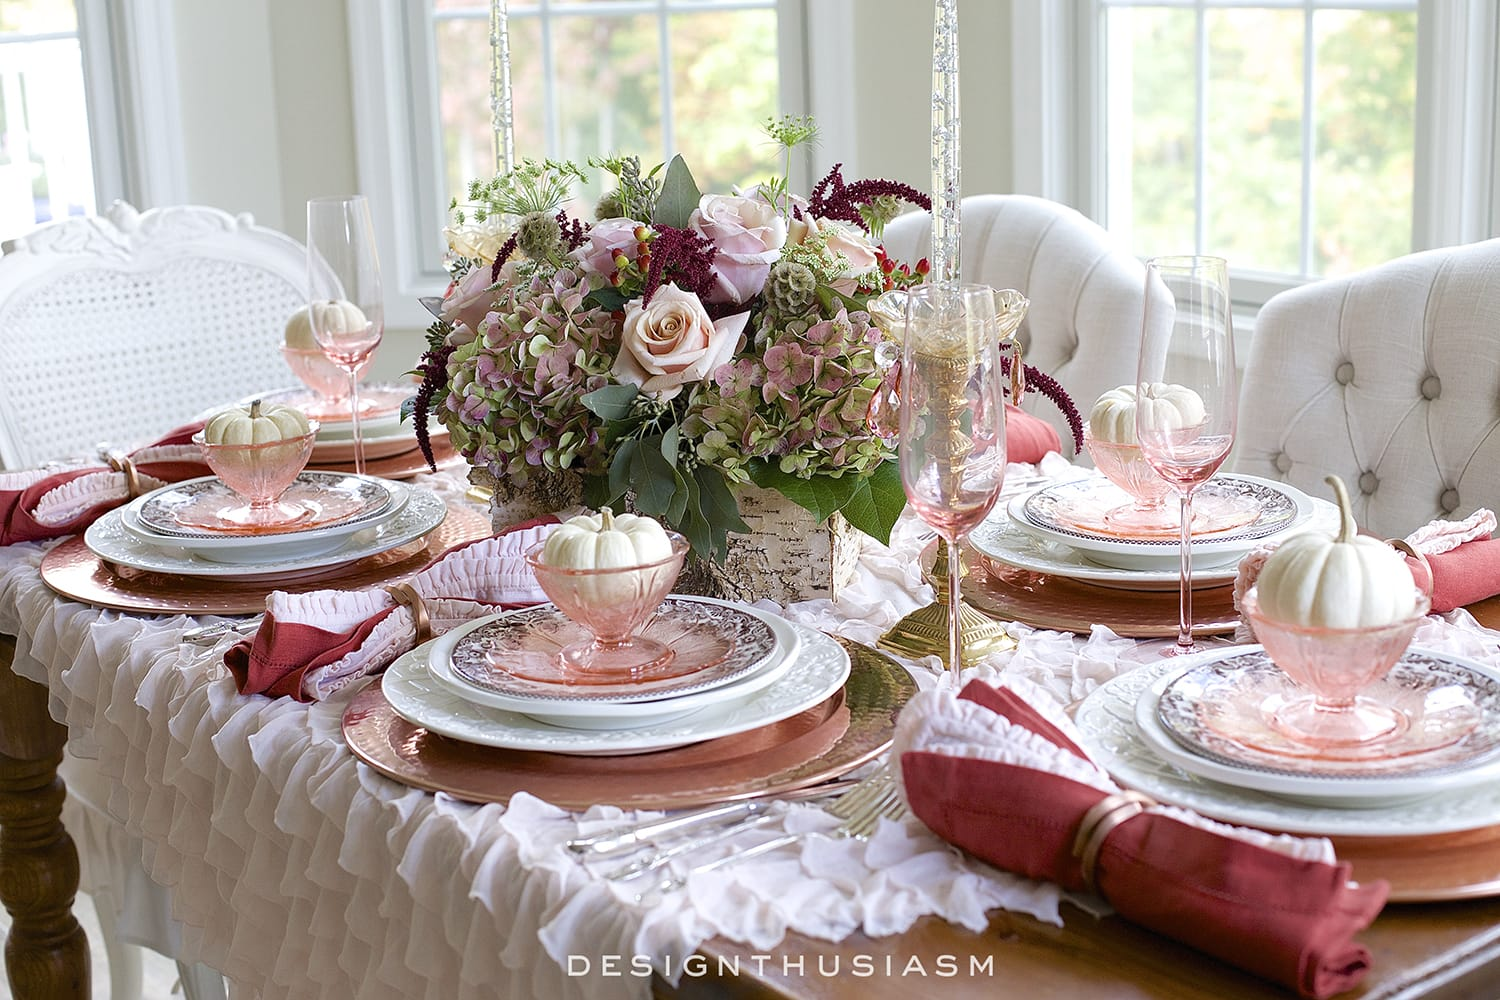 A Burnished Copper Tablescape for a Warm Thanksgiving Dinner | Designthusiasm.com